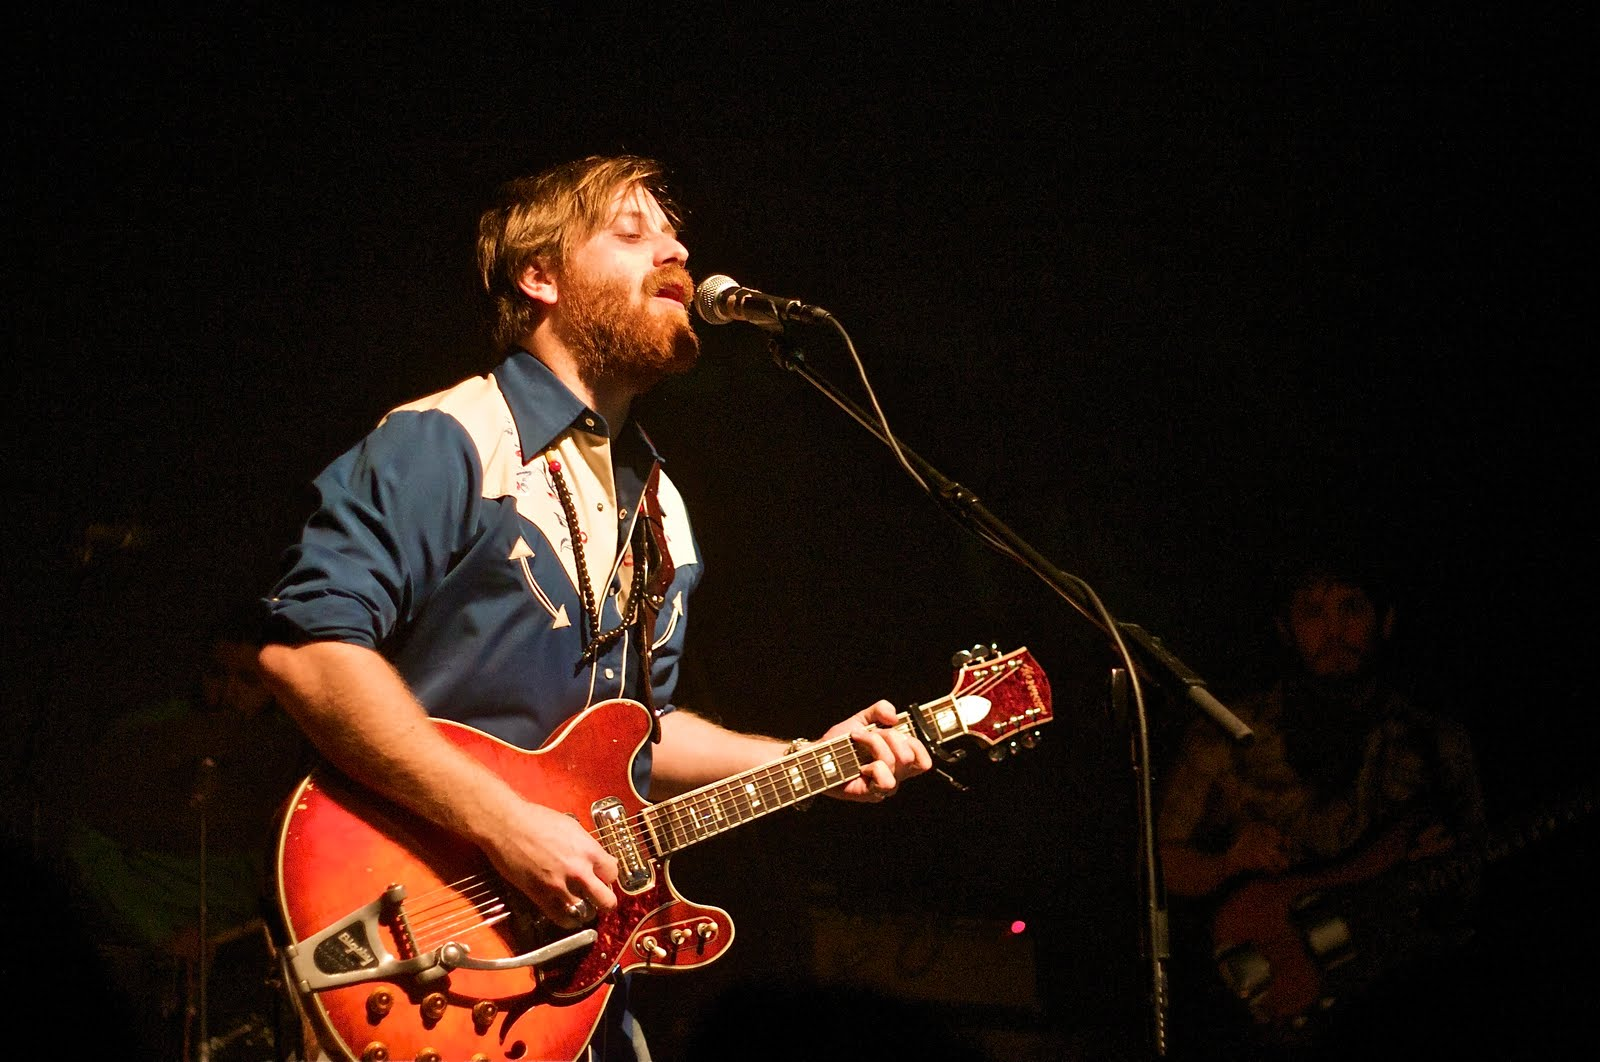 The dynamic duo of dan auerbach and patrick carney, otherwise known as the black keys, are back